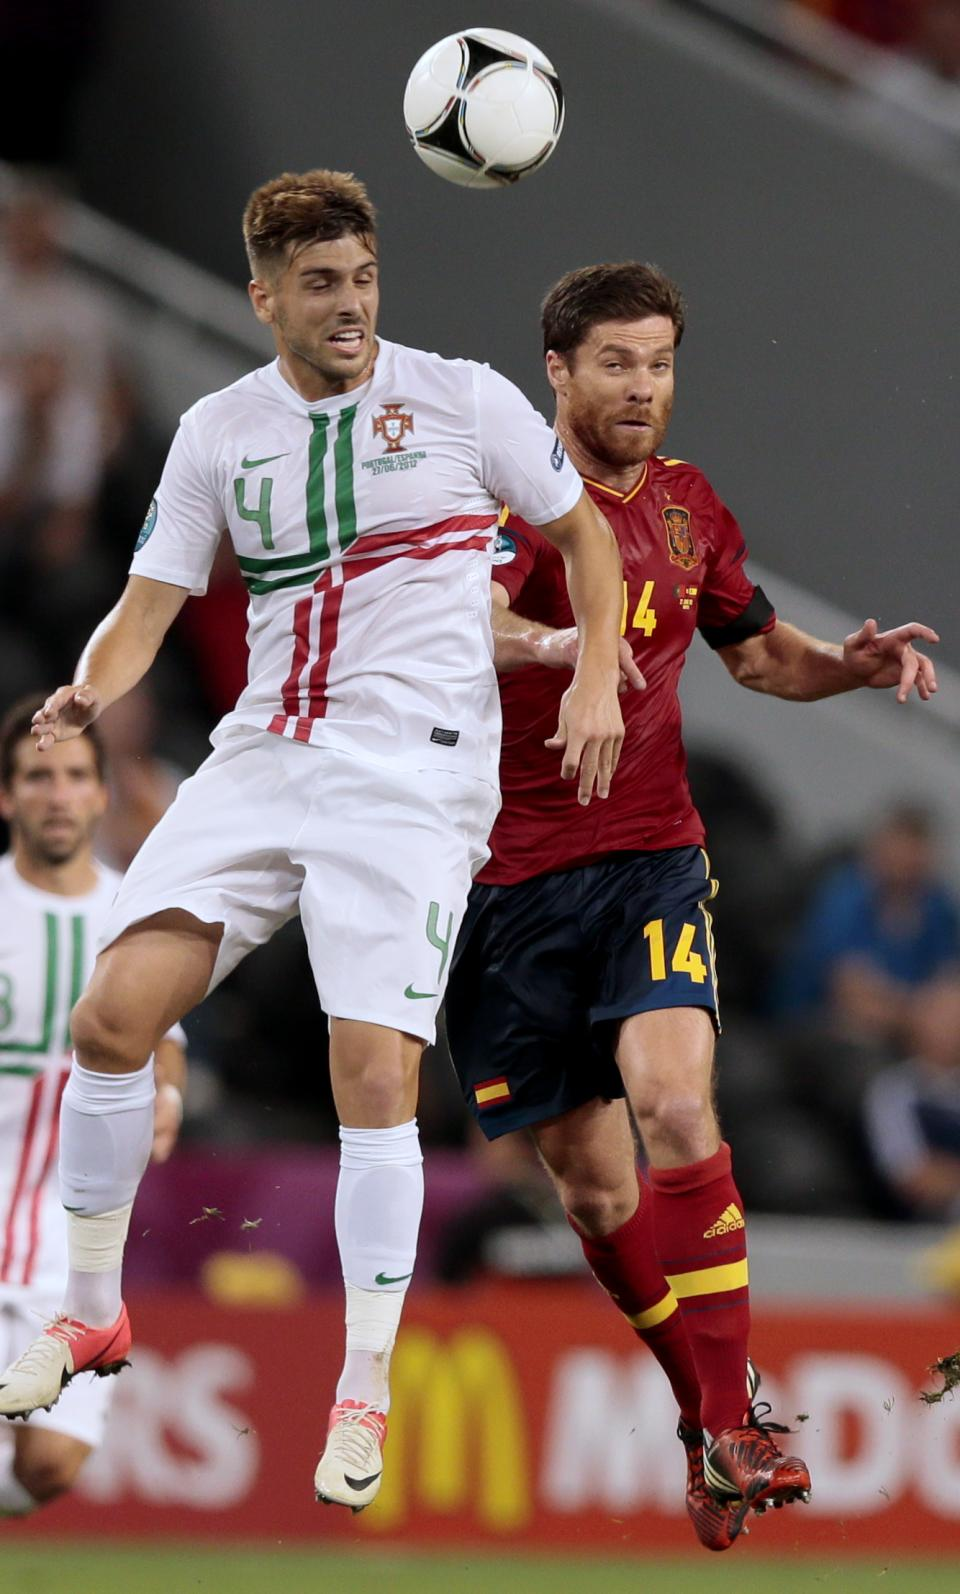 Portugal's Miguel Veloso, left, and Spain's Xabi Alonso go for a header during the Euro 2012 soccer championship semifinal match between Spain and Portugal in Donetsk, Ukraine, Wednesday, June 27, 2012. (AP Photo/Ivan Sekretarev)